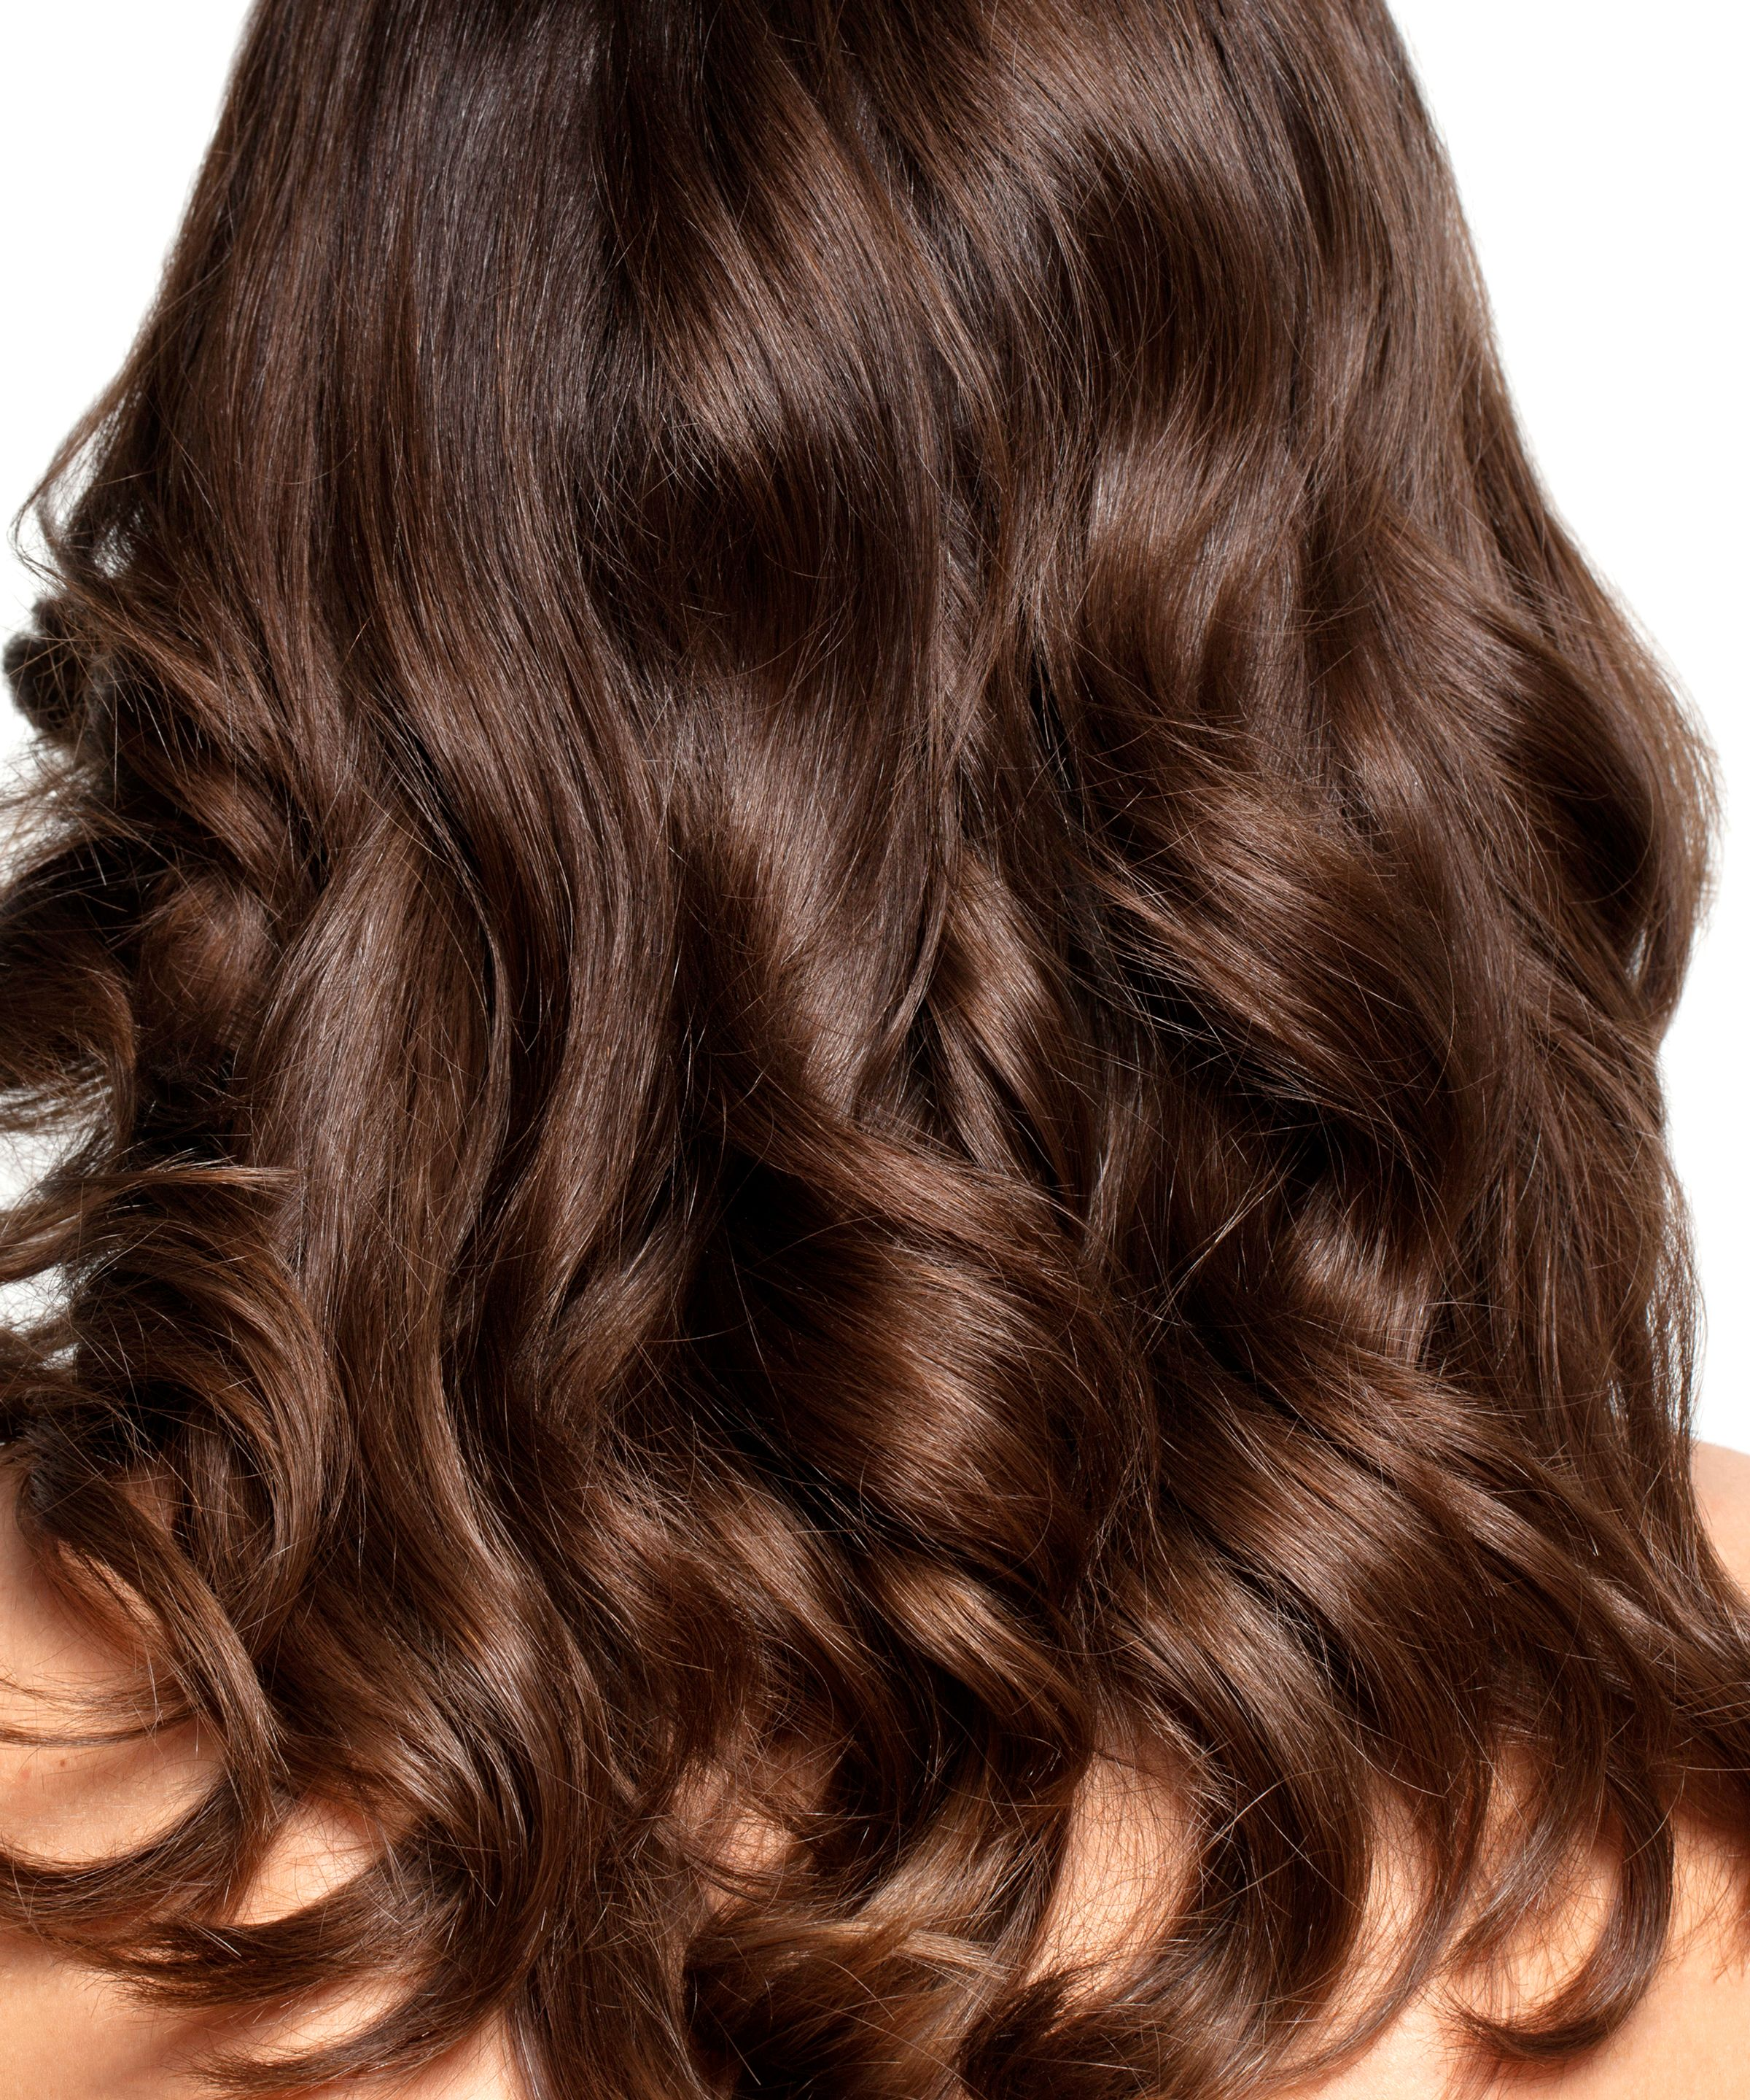 9 SulfateFree Shampoos to Keep Your Hair Healthy This